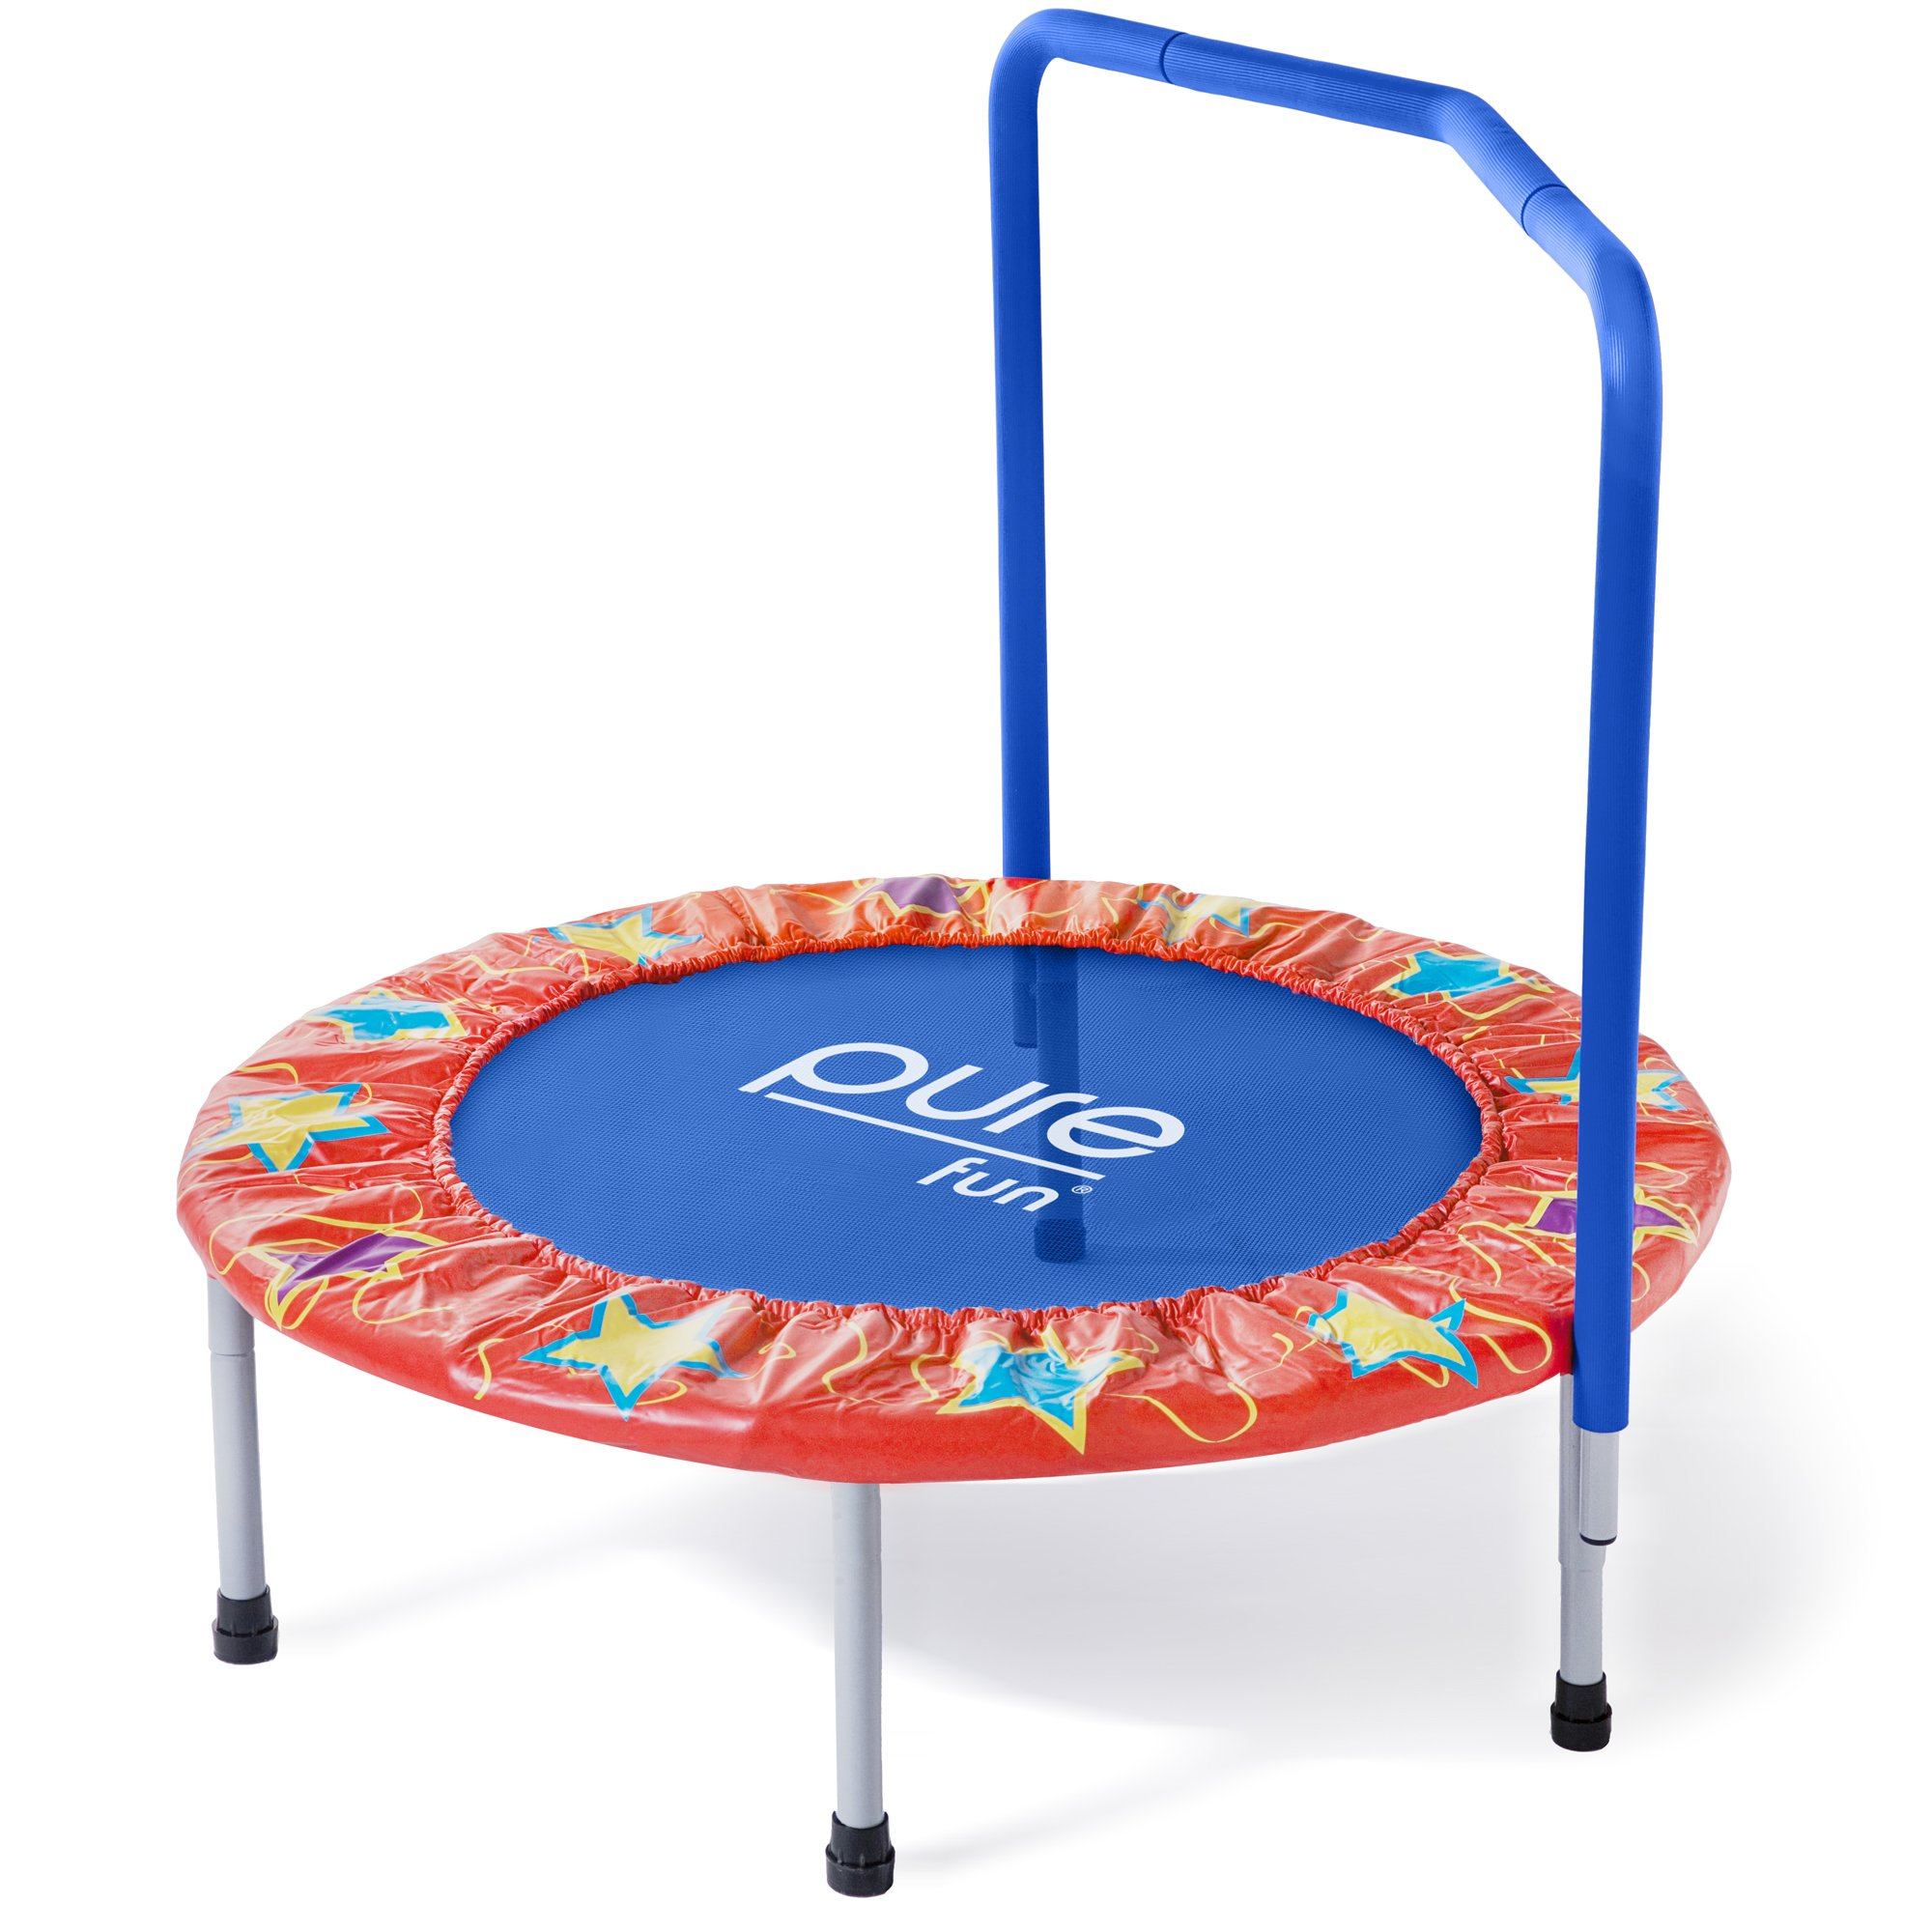 Pure Fun Kids 36'' Mini Trampoline with Handrail, Youth Ages 3 to 8